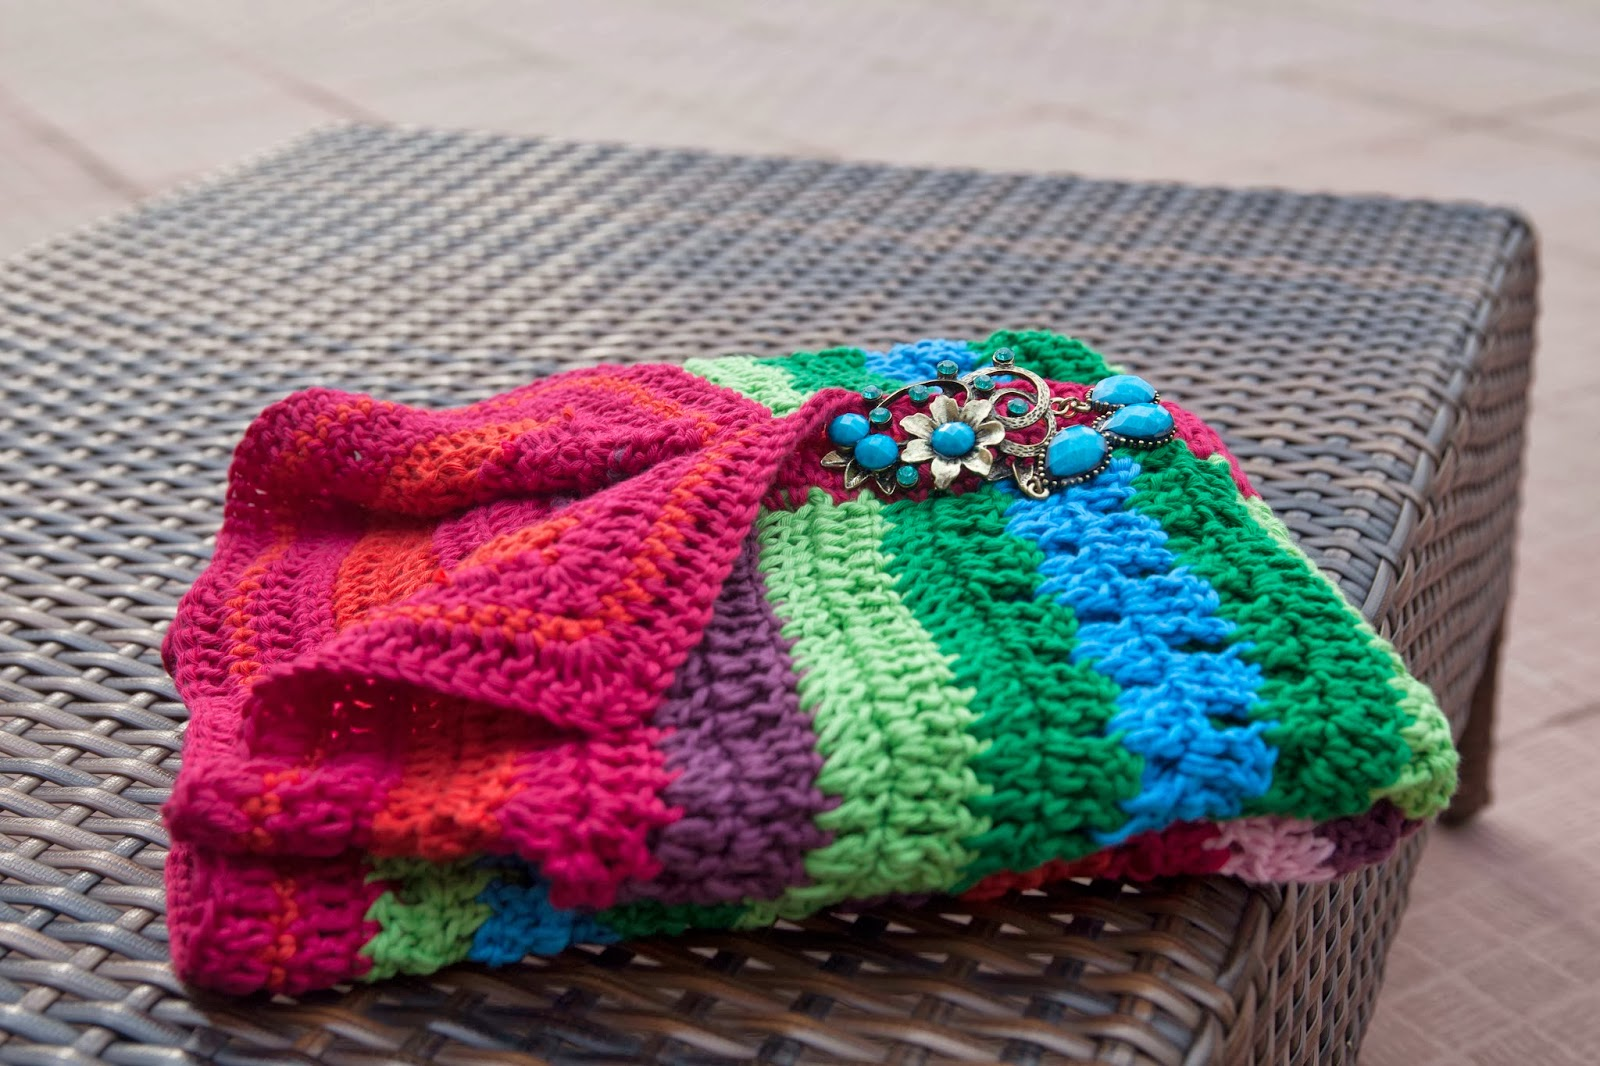 Crochet Patterns Using Cotton Yarn : crochet rockstar: Balinese Cotton Yarns